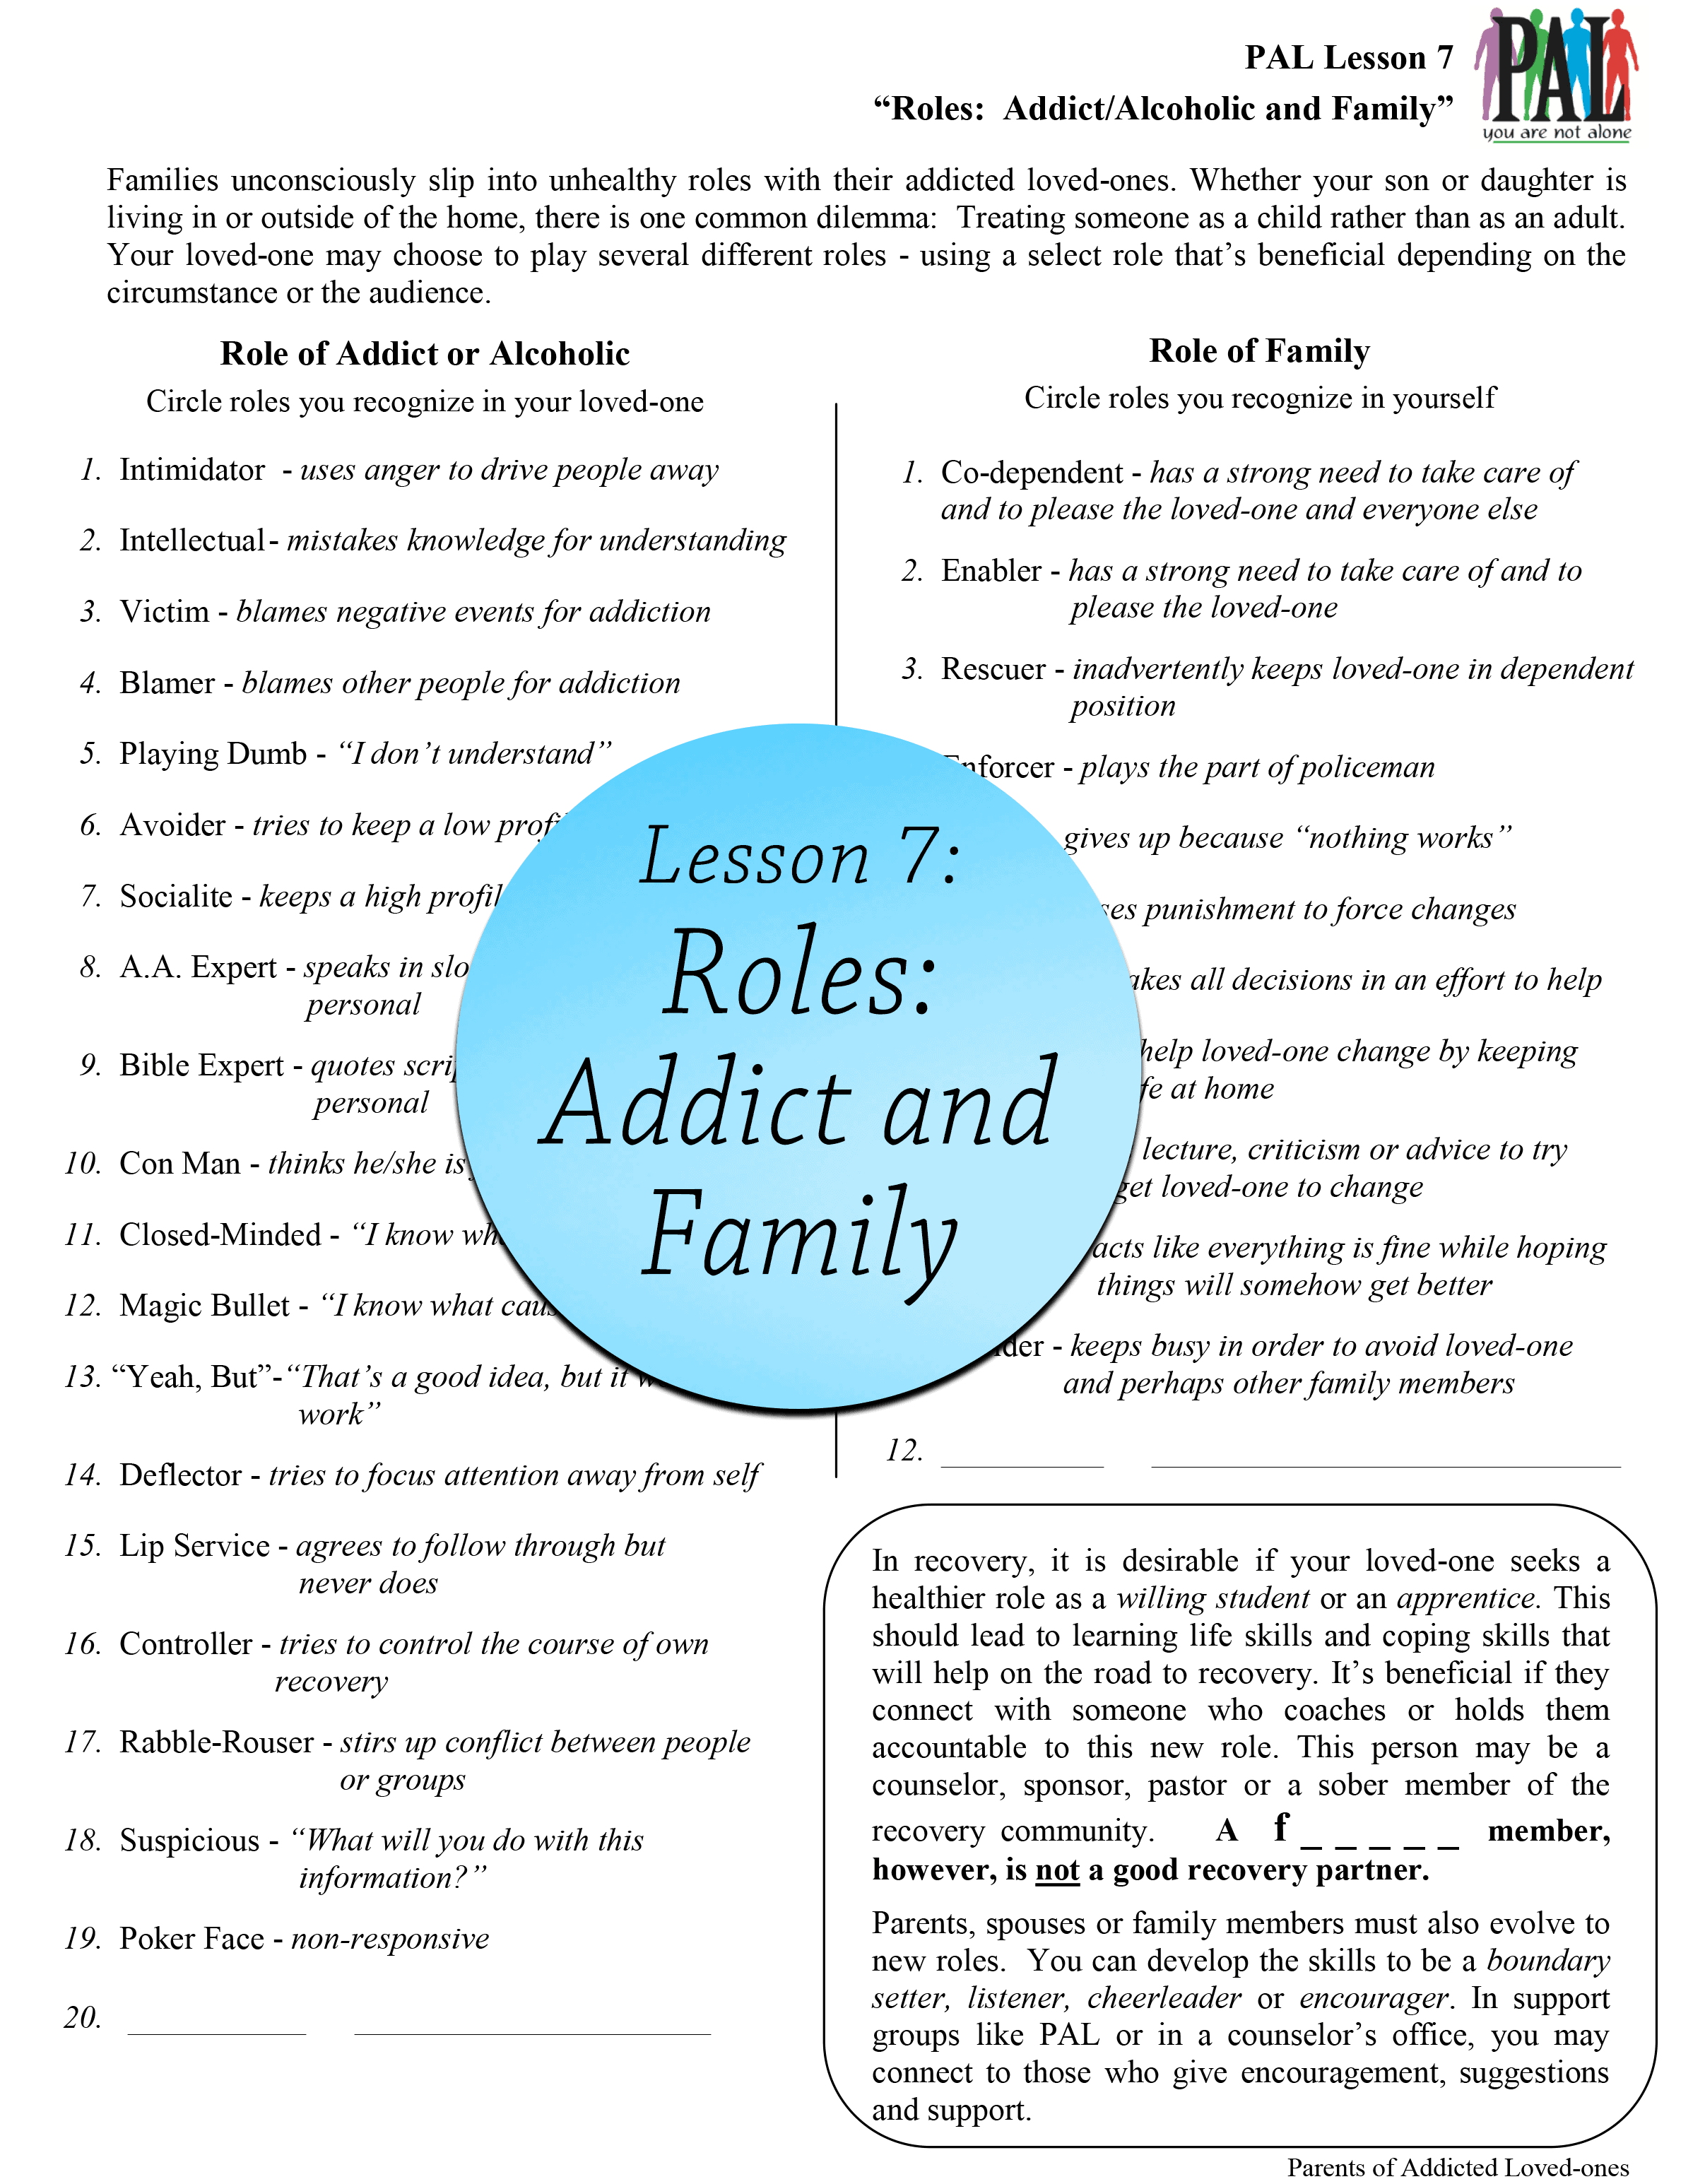 Lesson 7: Roles: Addict and Family